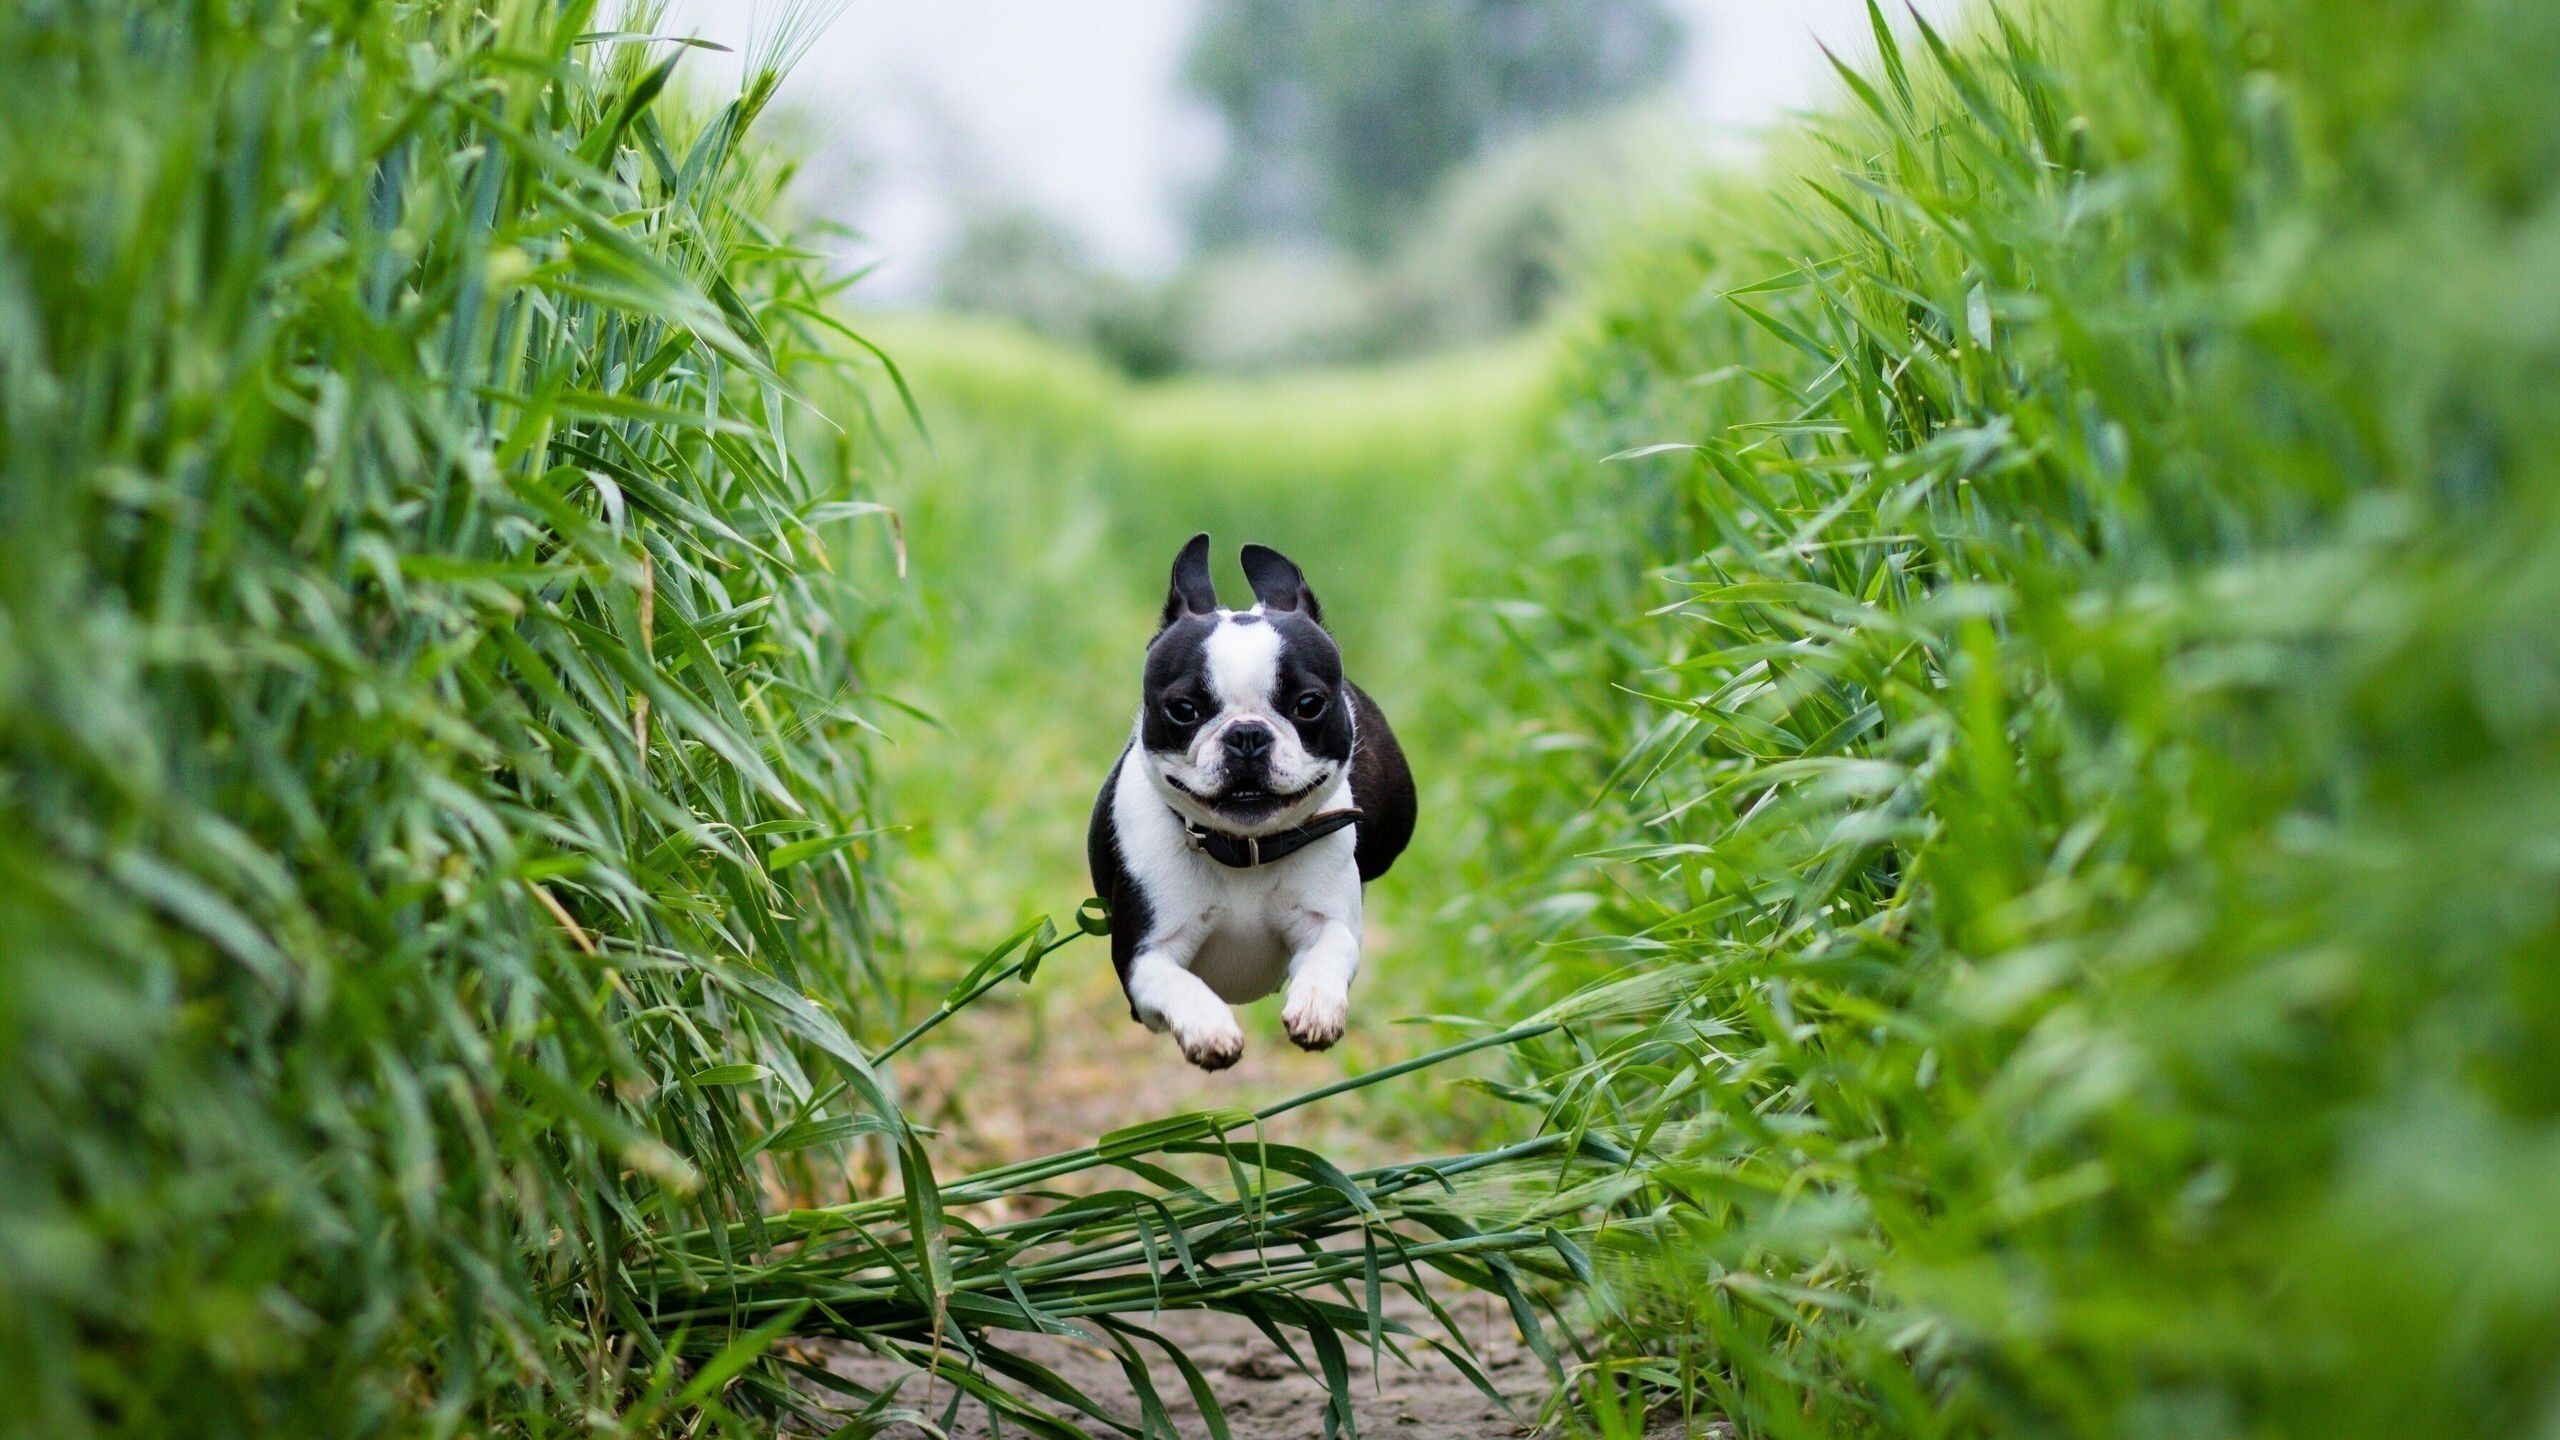 1080p Boston Terrier Dog Wallpaper Background